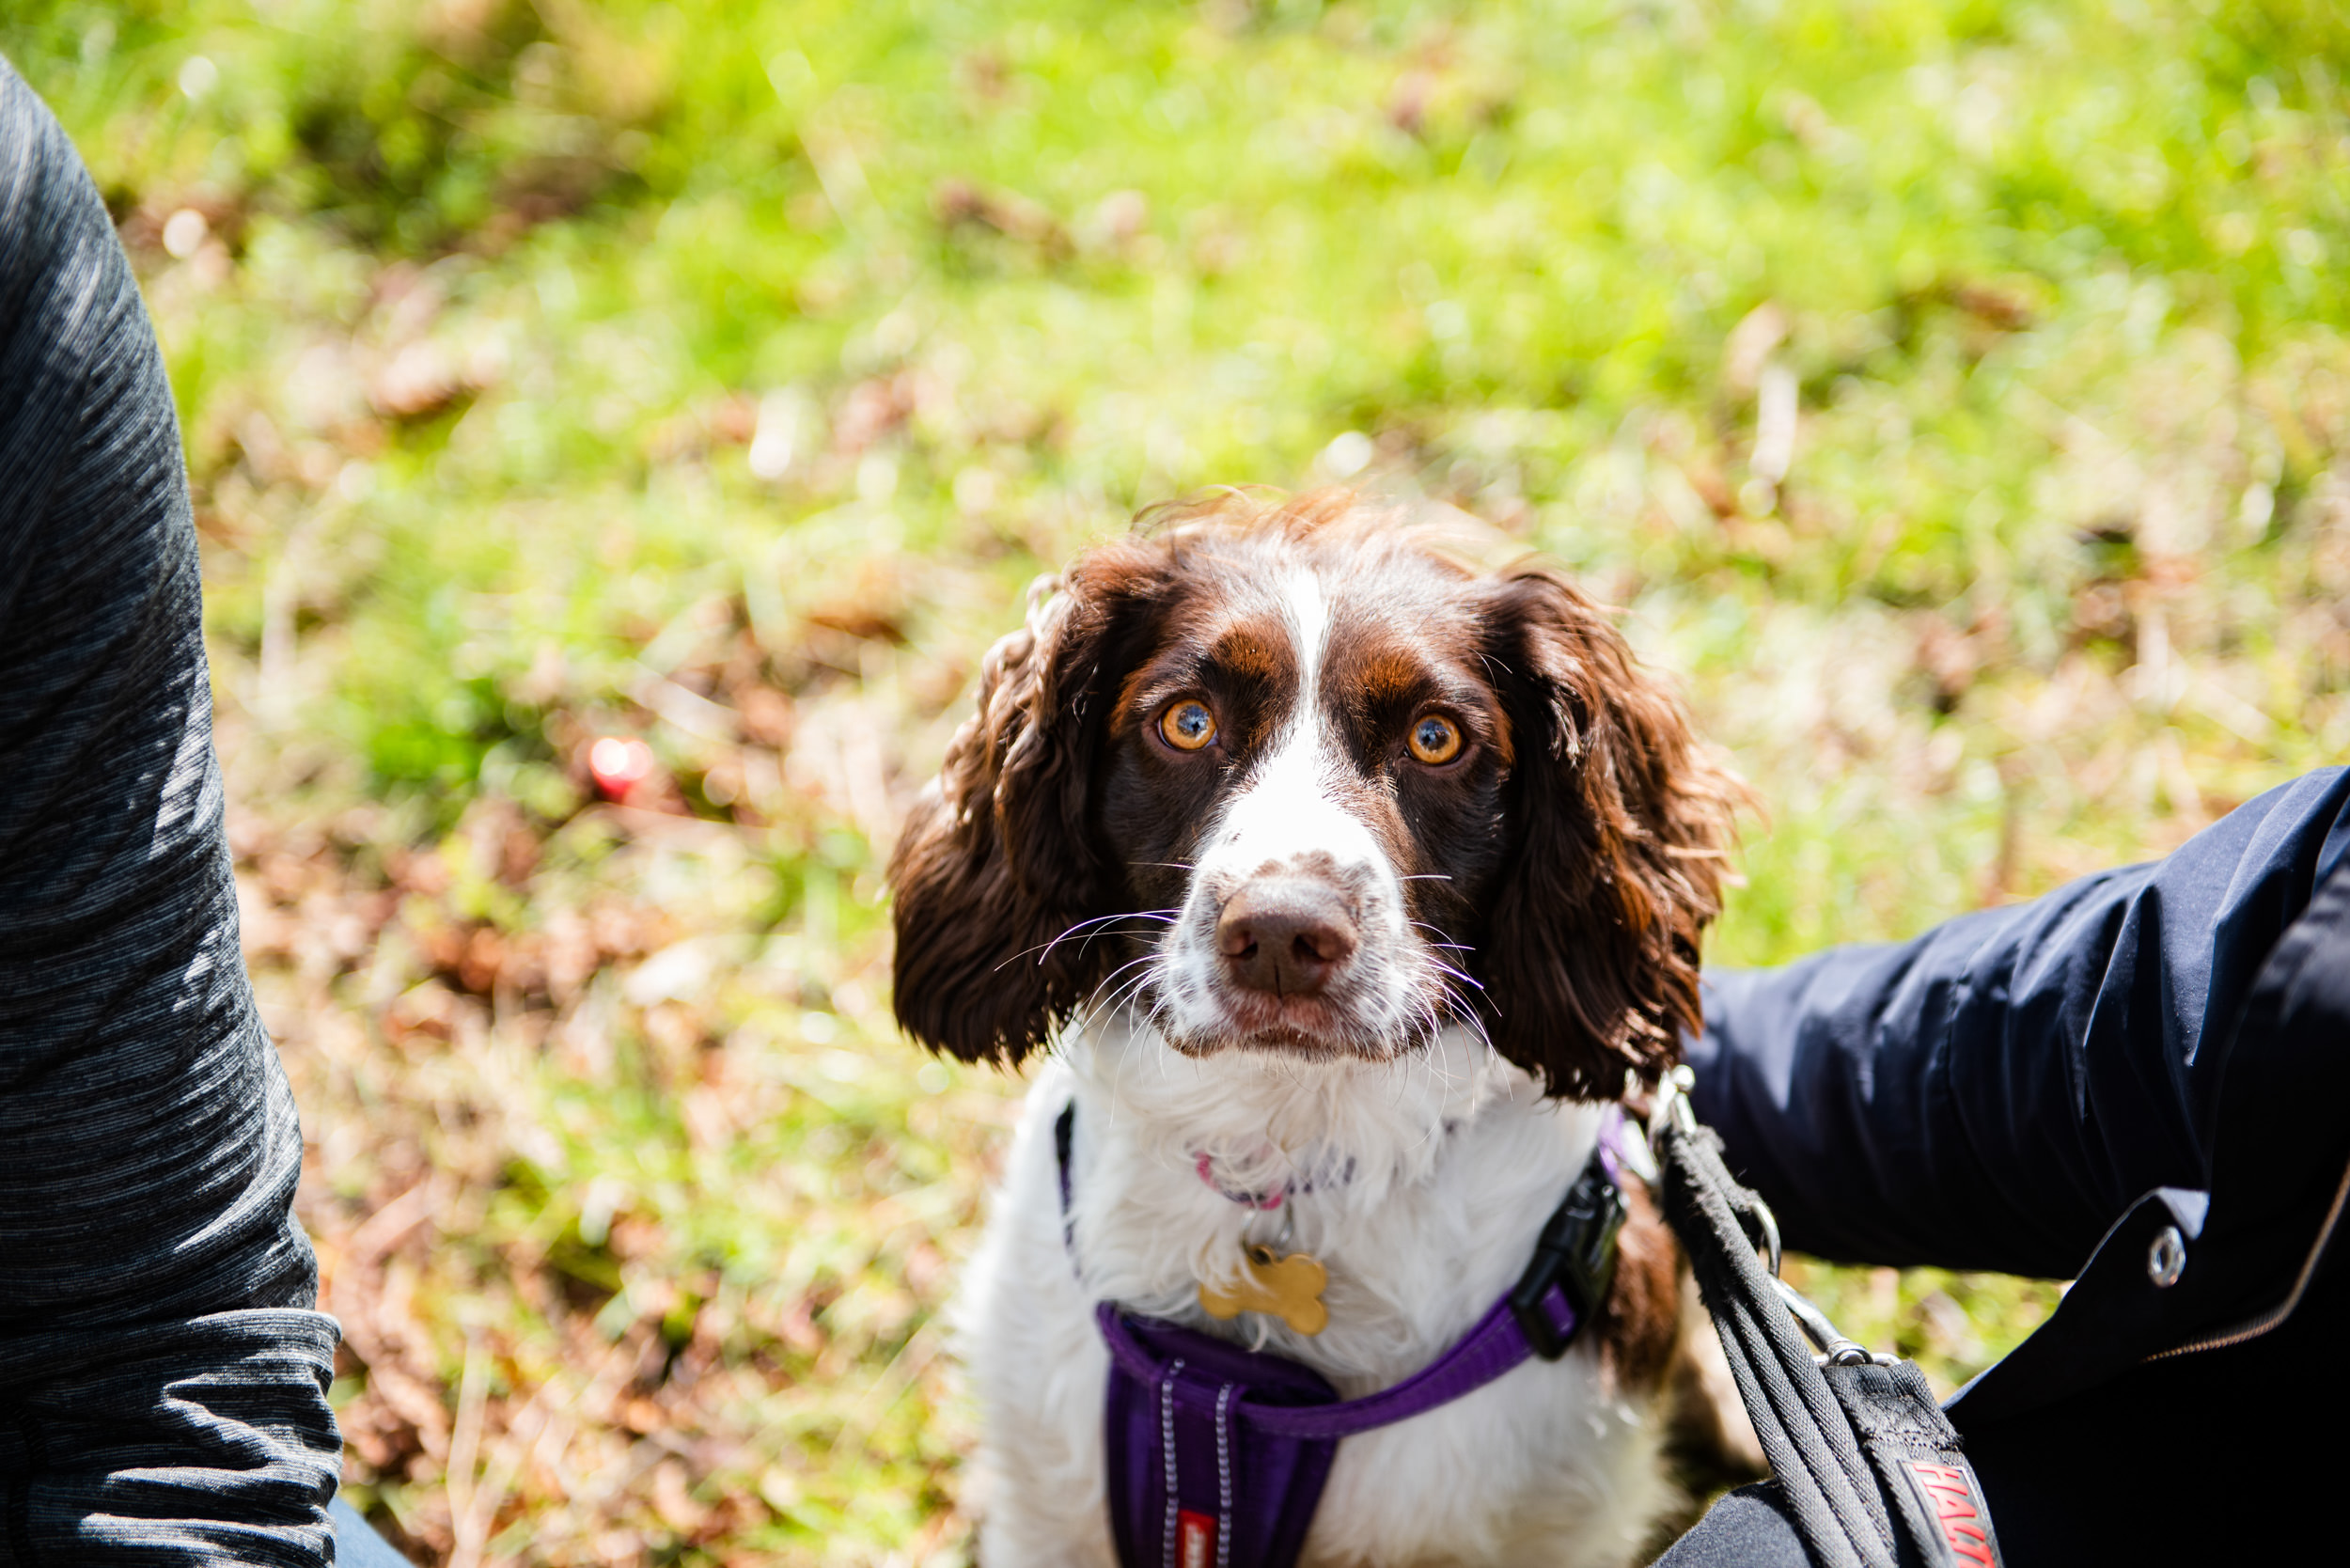 Tan and white Springer Spaniel looking into the camera